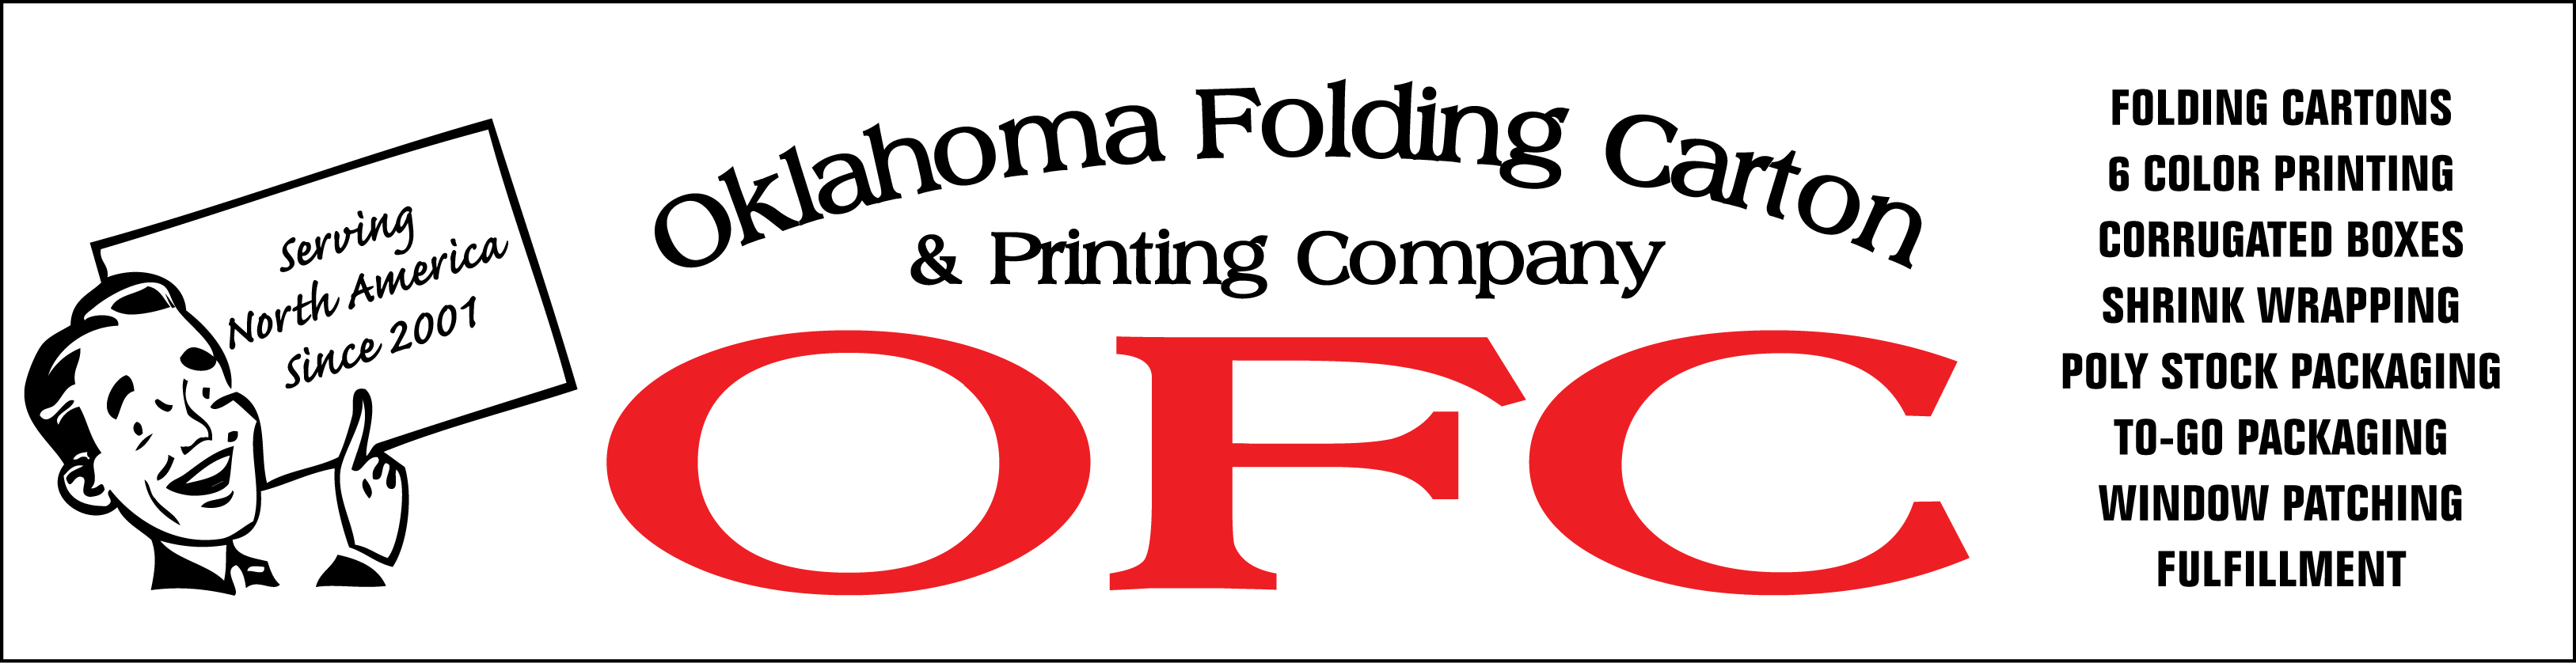 Oklahoma Folding Carton